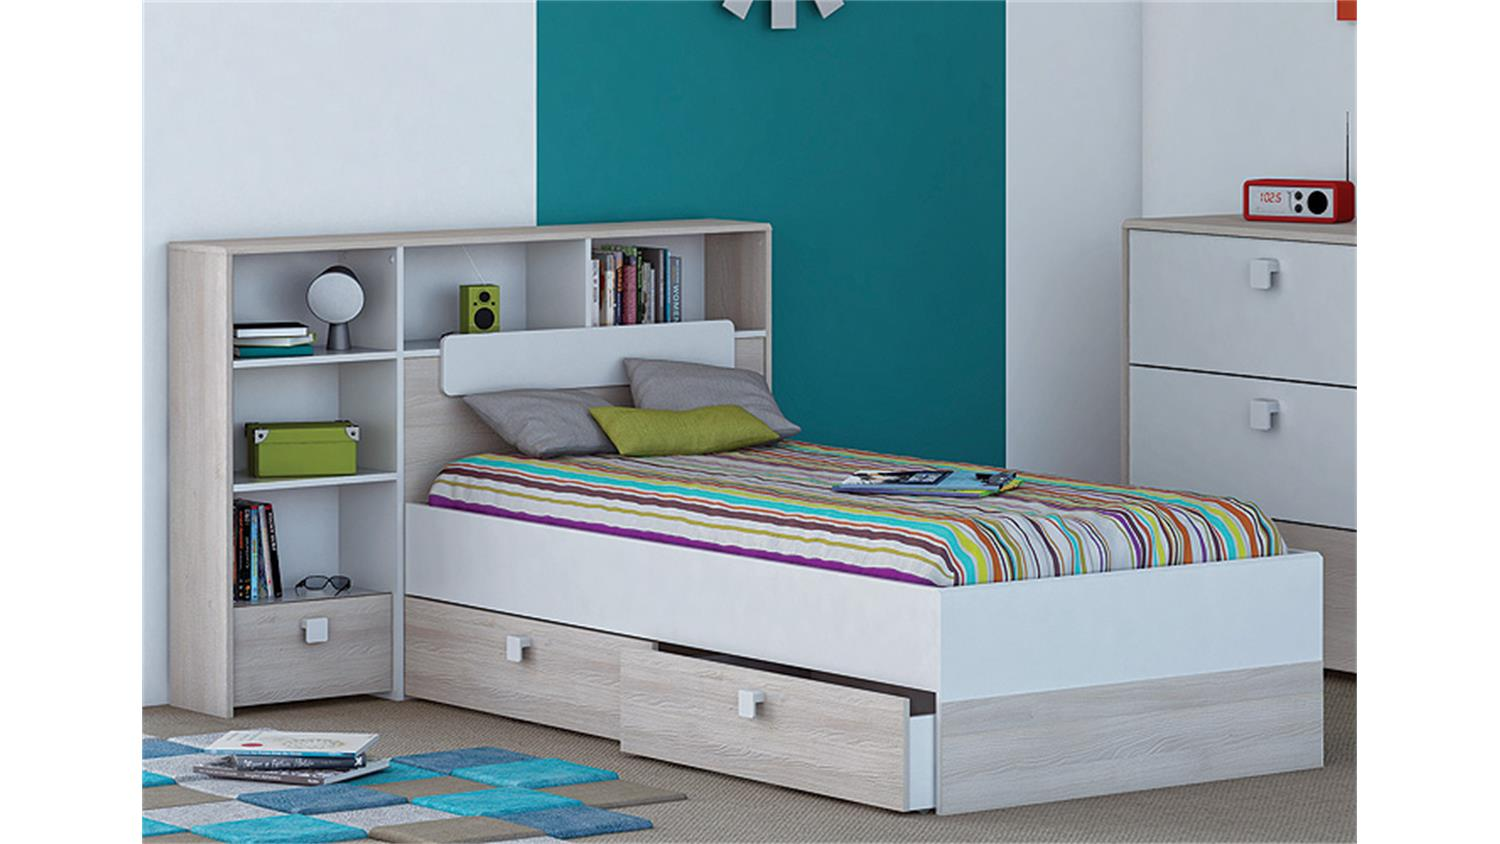 bett kombi game inkl bettumbau wei und akazie 90x190 cm. Black Bedroom Furniture Sets. Home Design Ideas